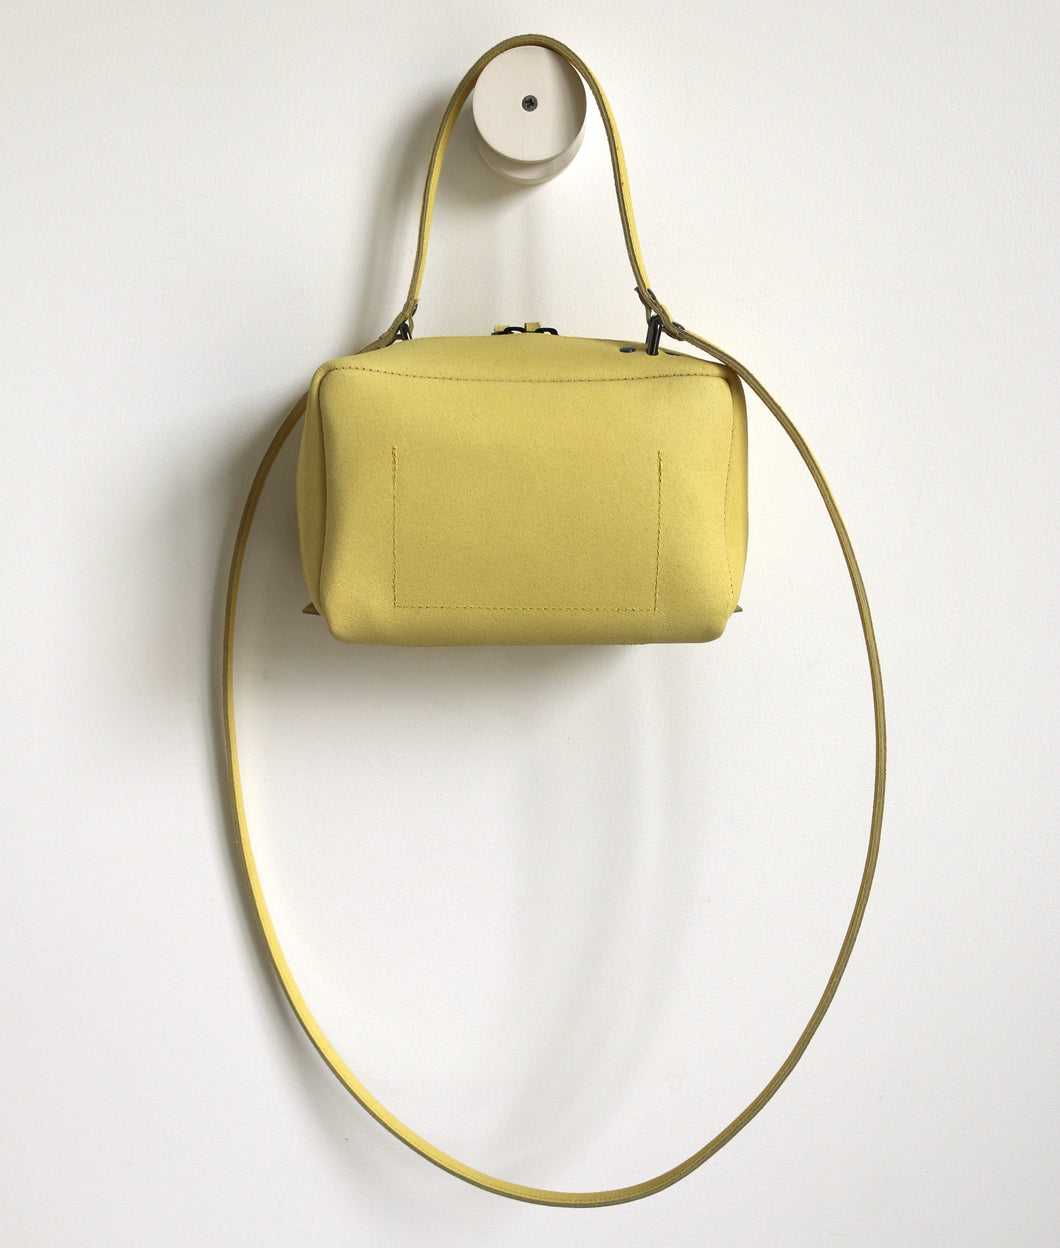 frrry Tuesday loop yellow bag